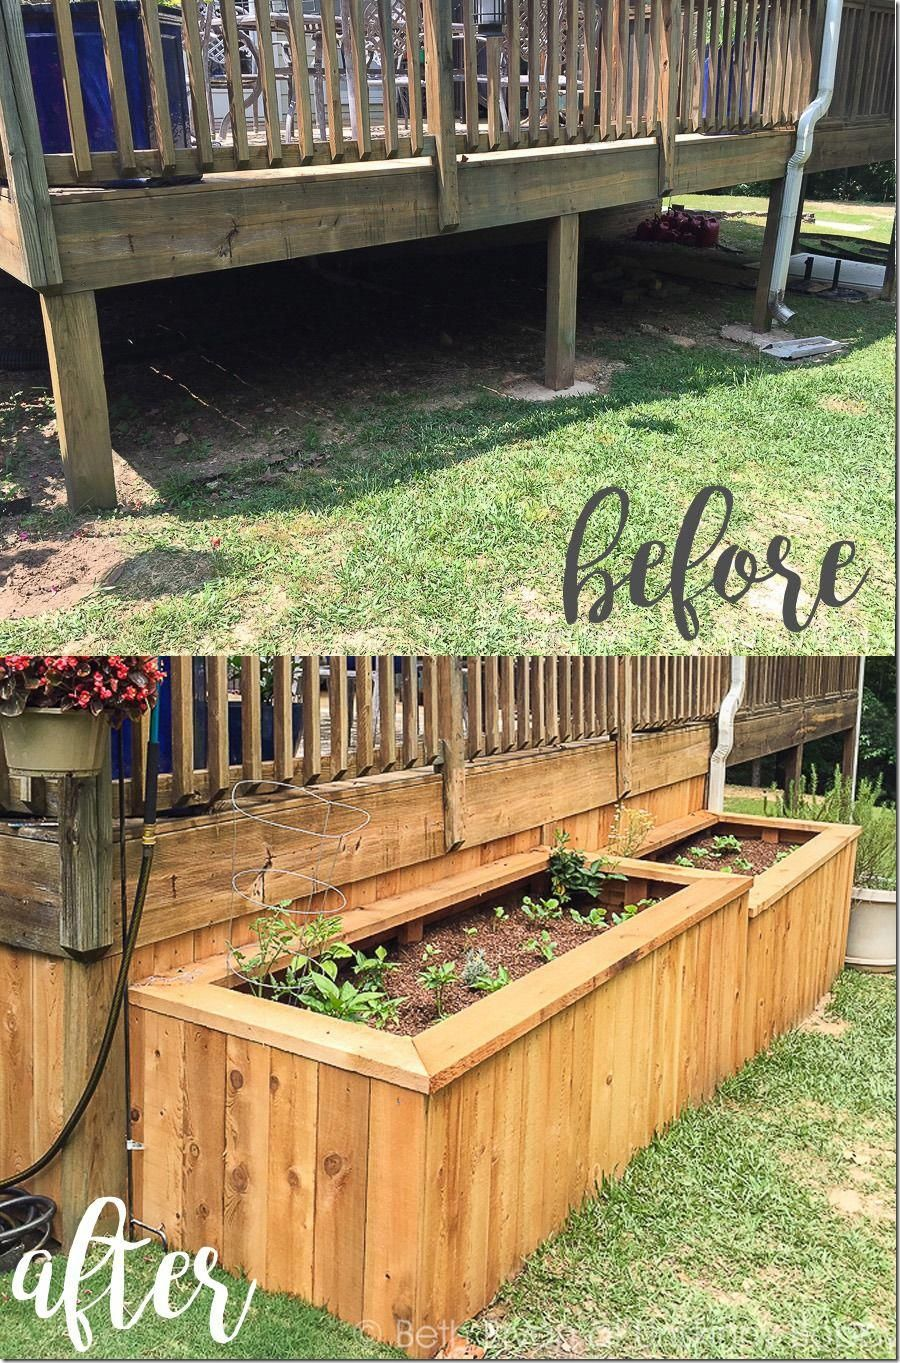 Backyard Landscaping With Raised Garden Beds What A Great Idea To Enclose The Underside Of A Porch Patioideas Backyard Makeover Backyard Backyard Patio Backyard raised garden bed ideas